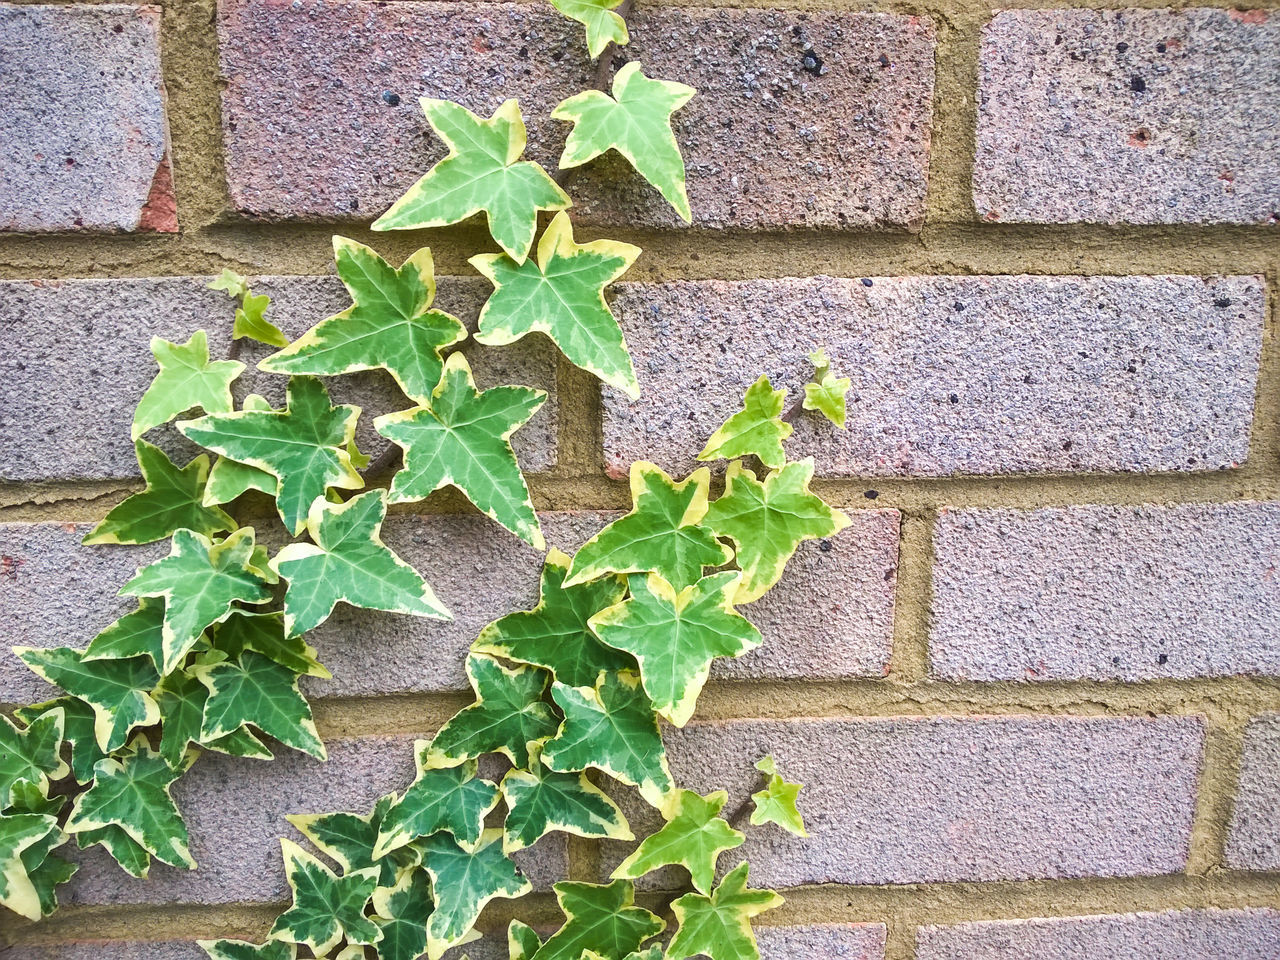 Close-Up Of Plants Growing On Wall